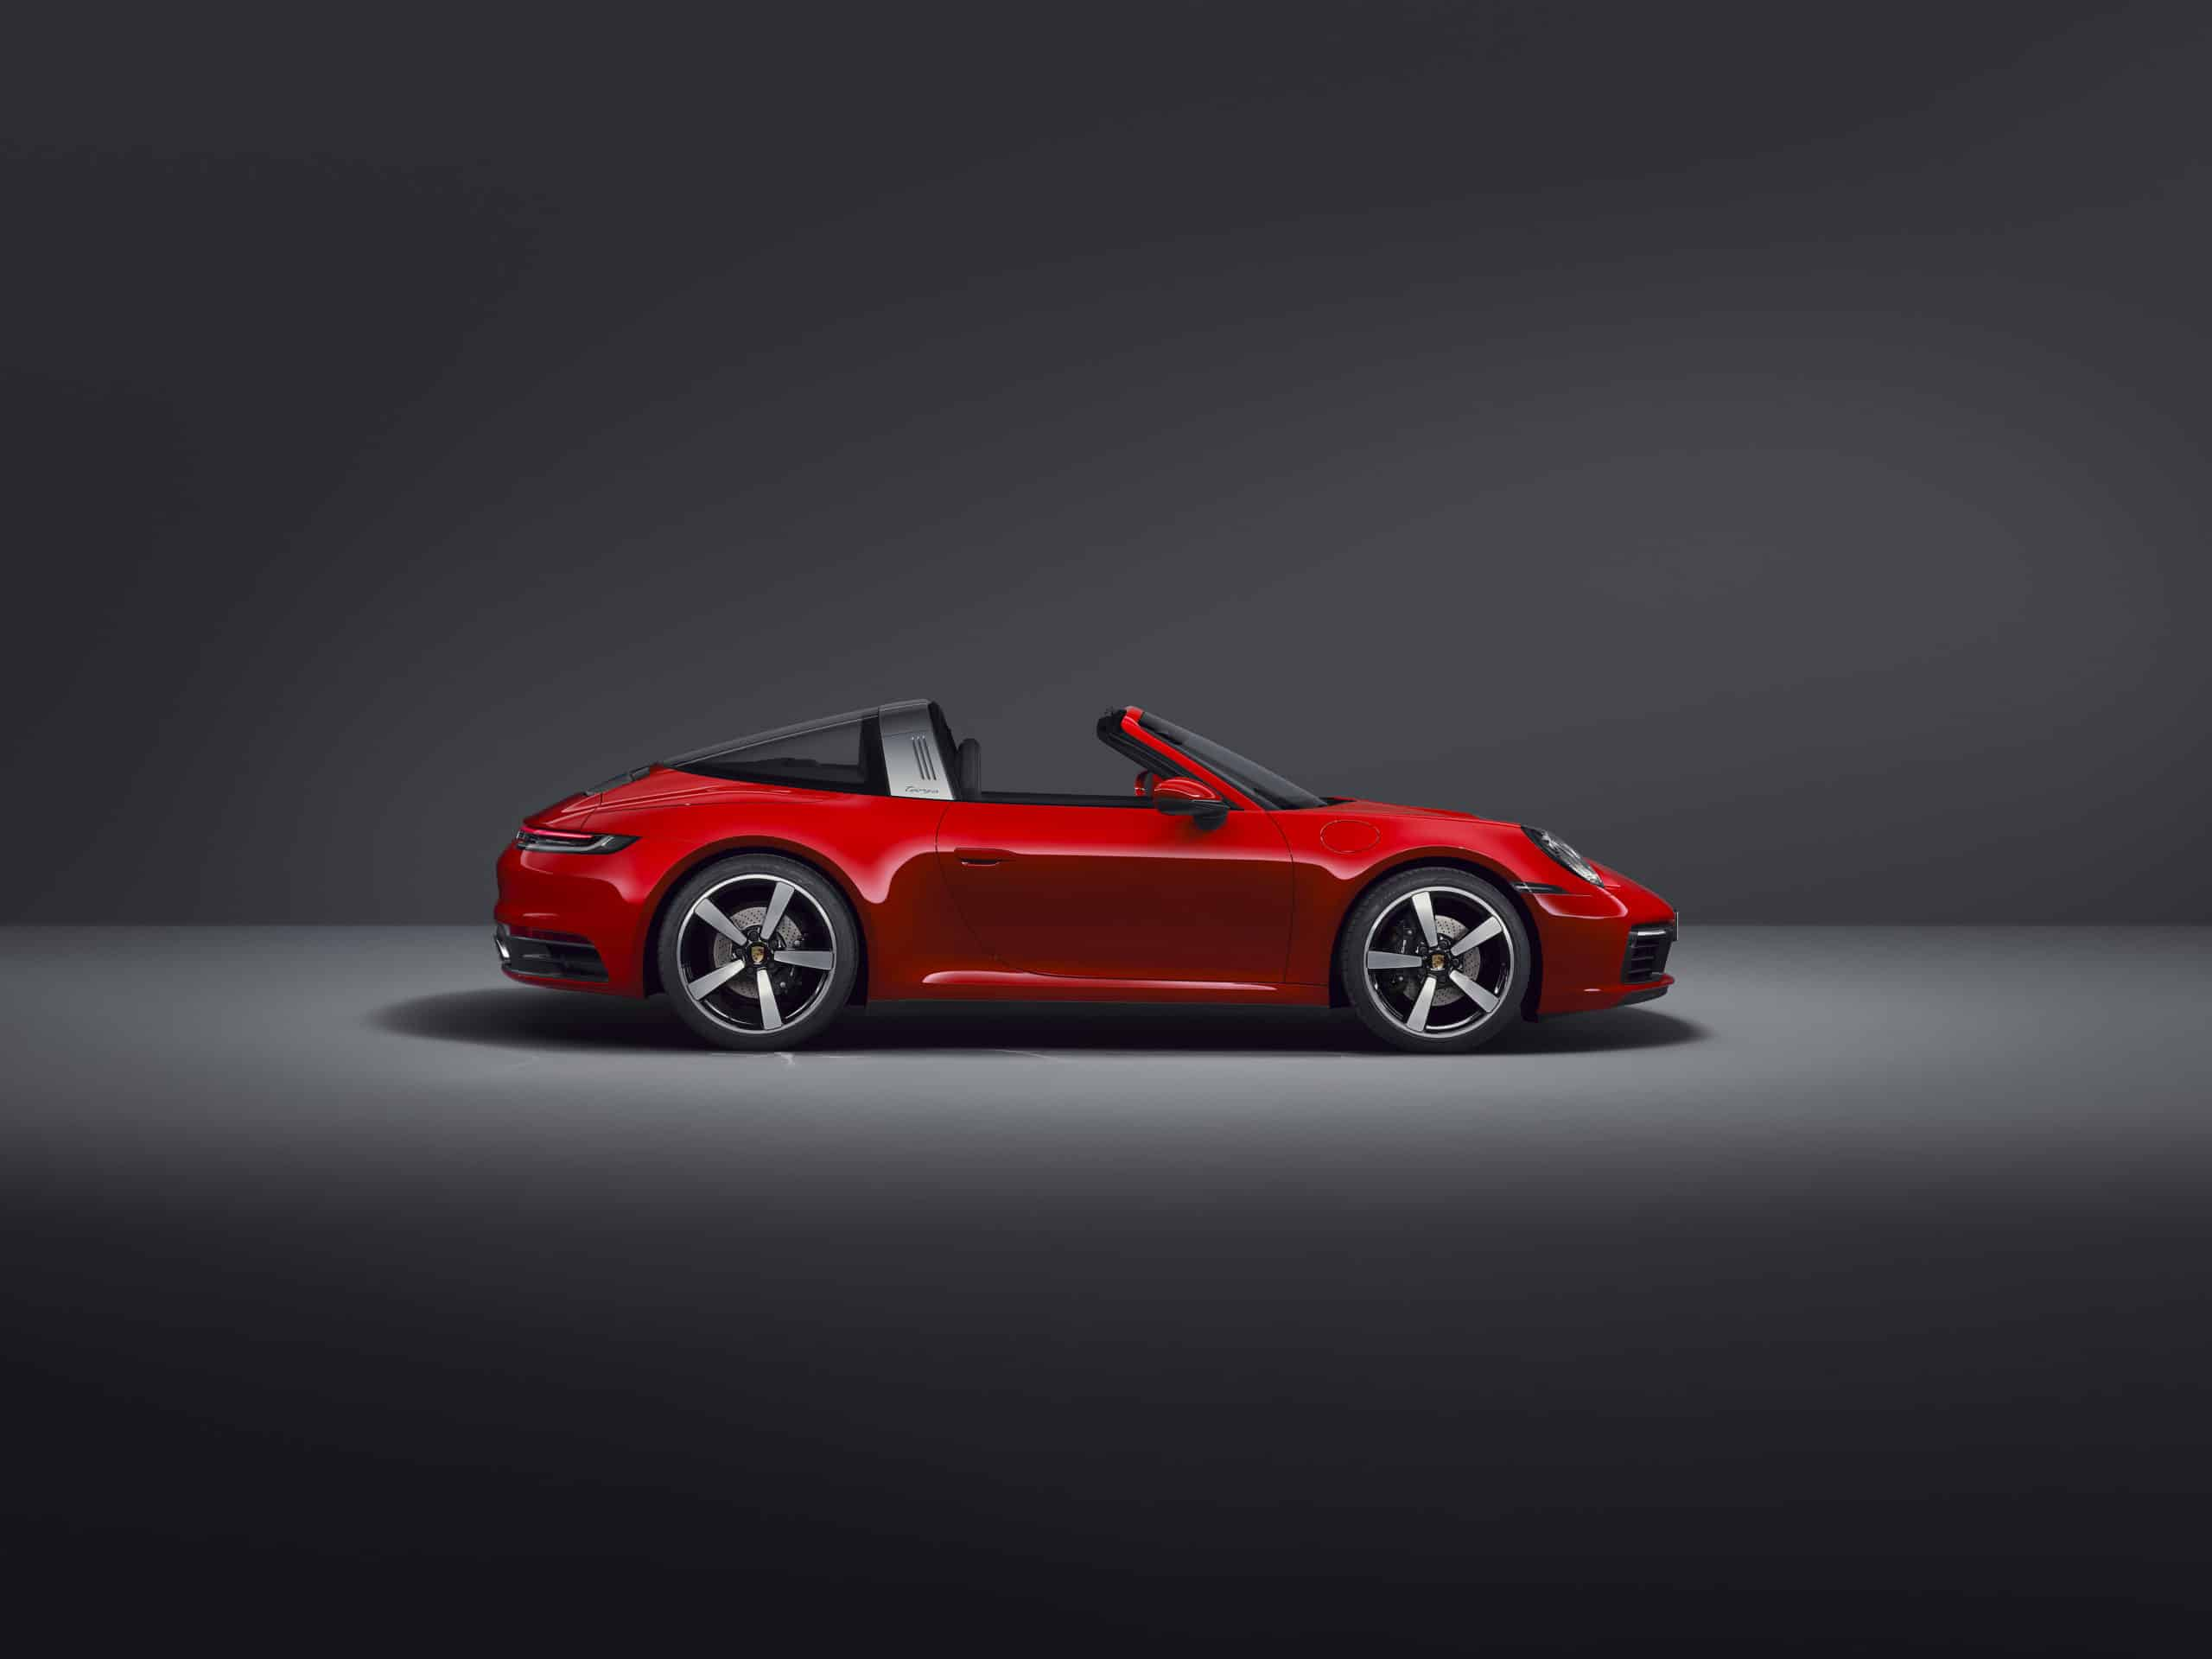 2021 Porsche 911 Targa 4 red studio side view